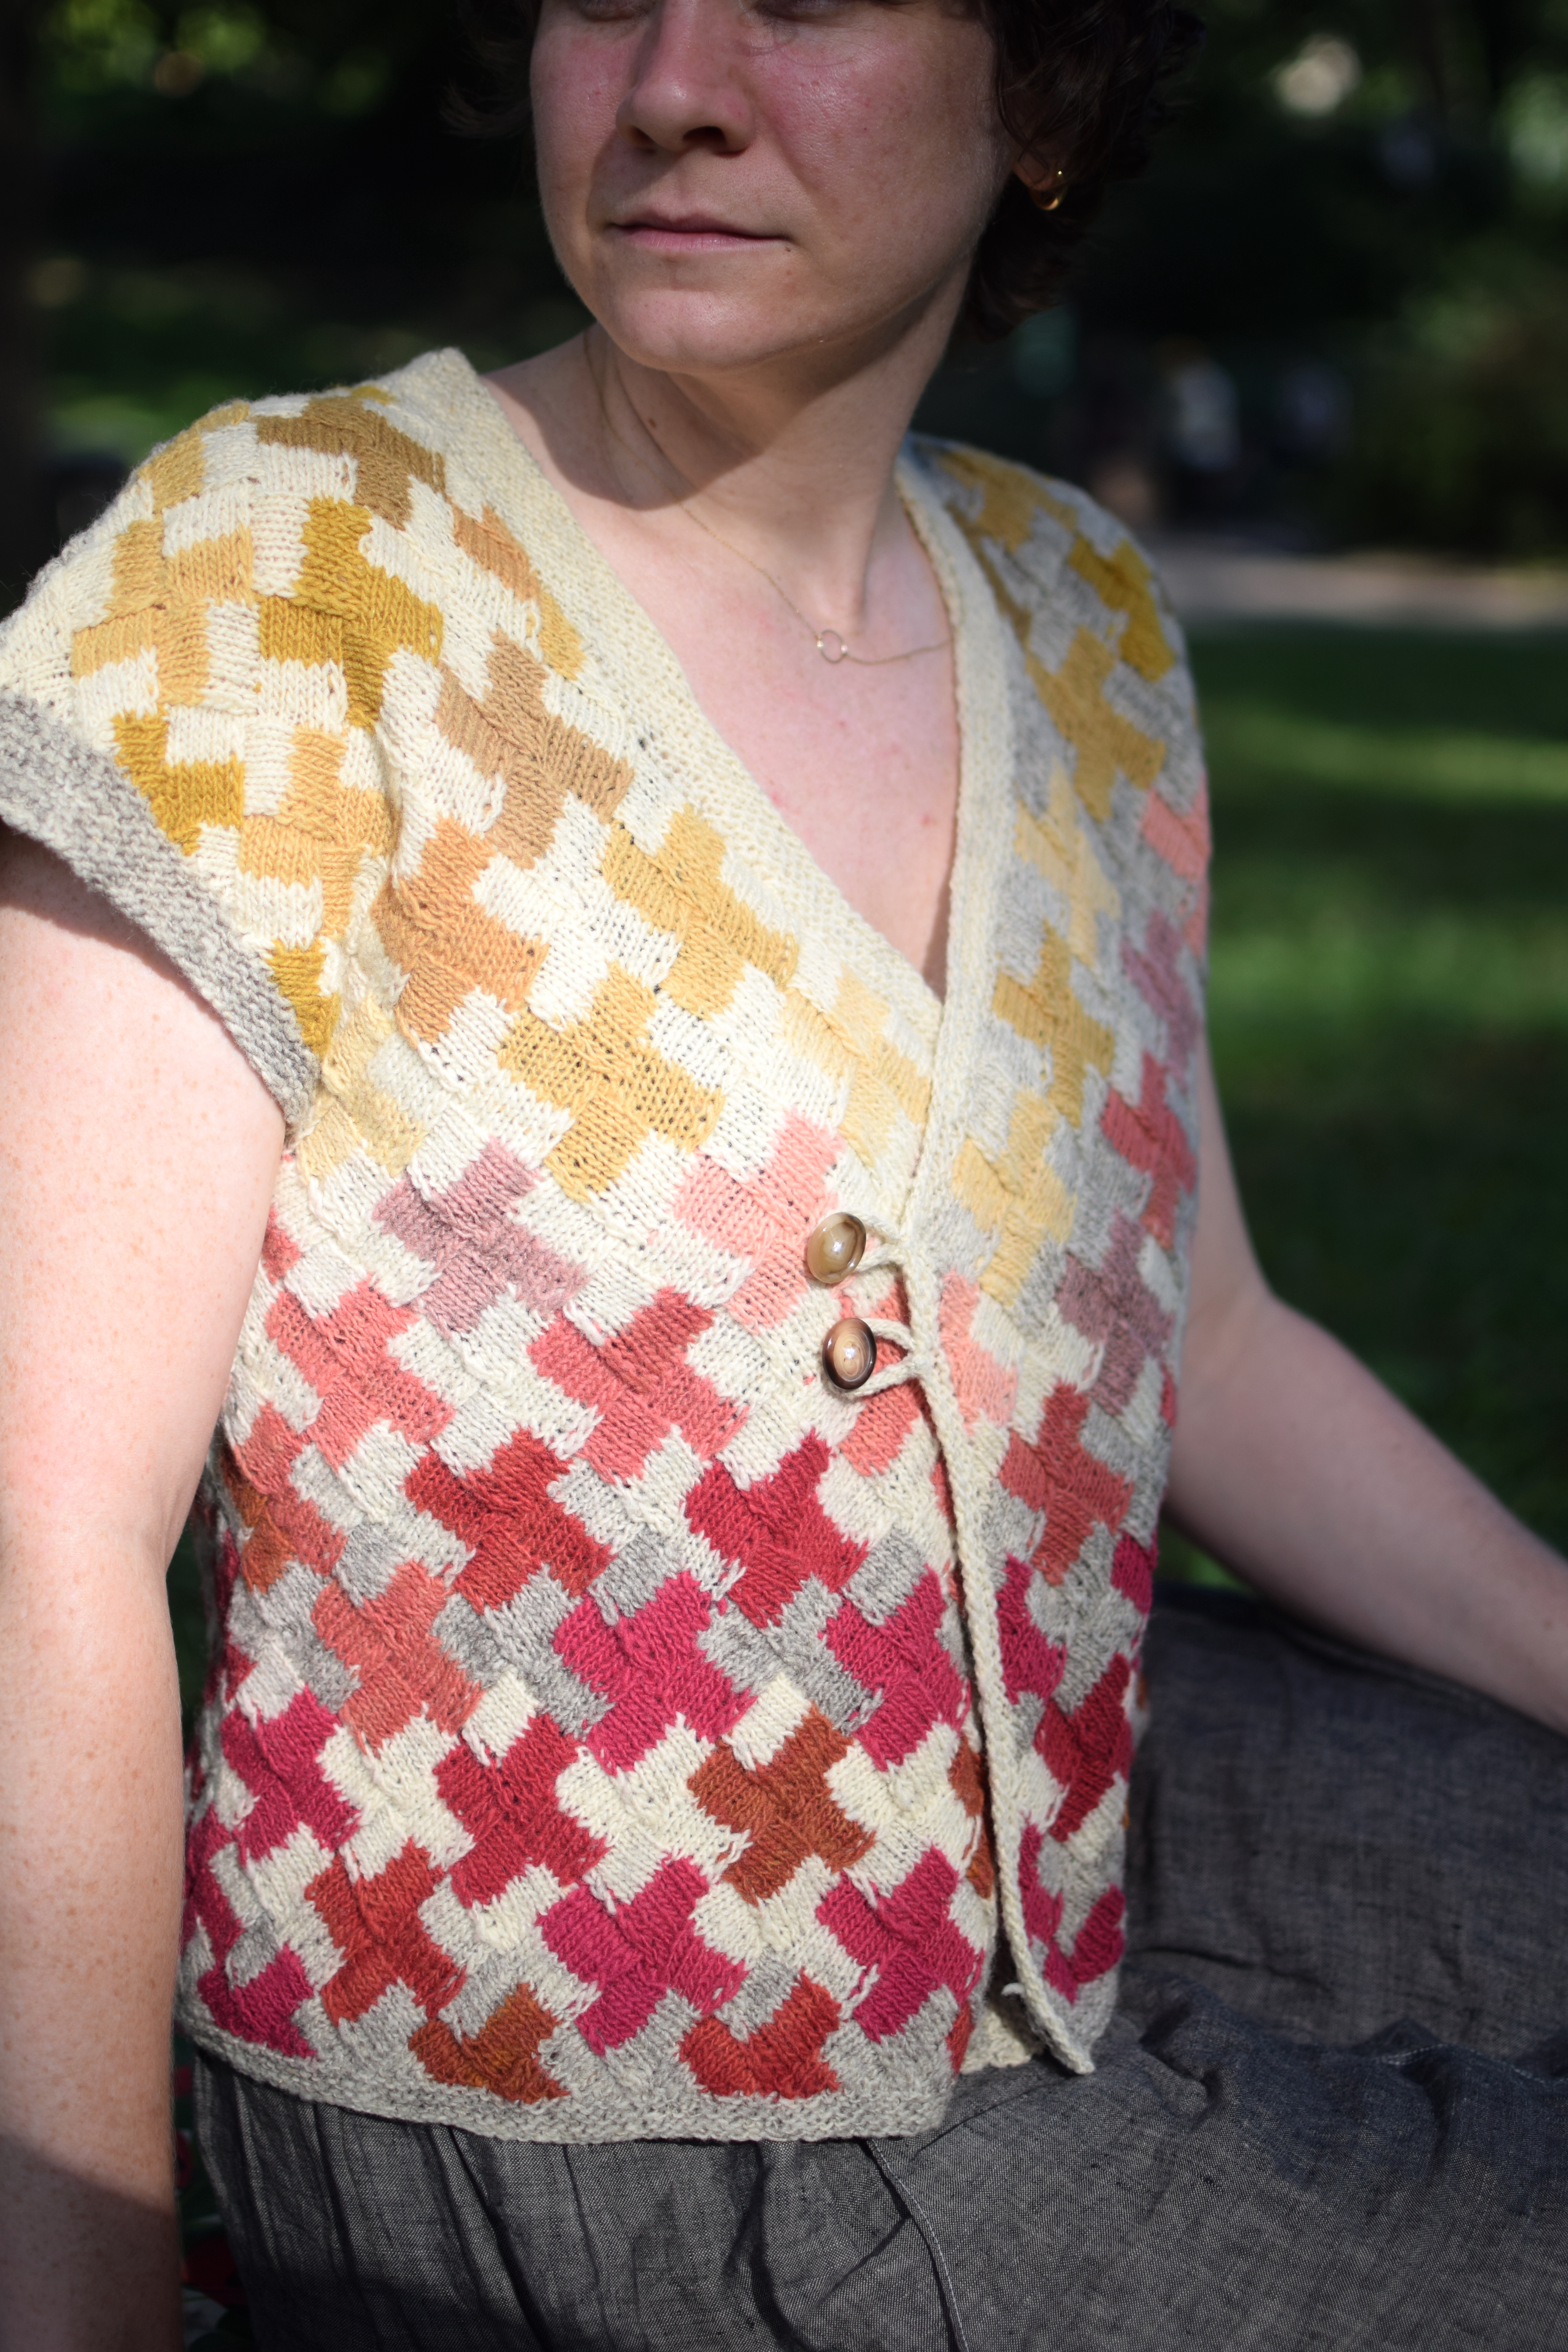 sun shines on a woman wearing a hand-knitted sweater vest.